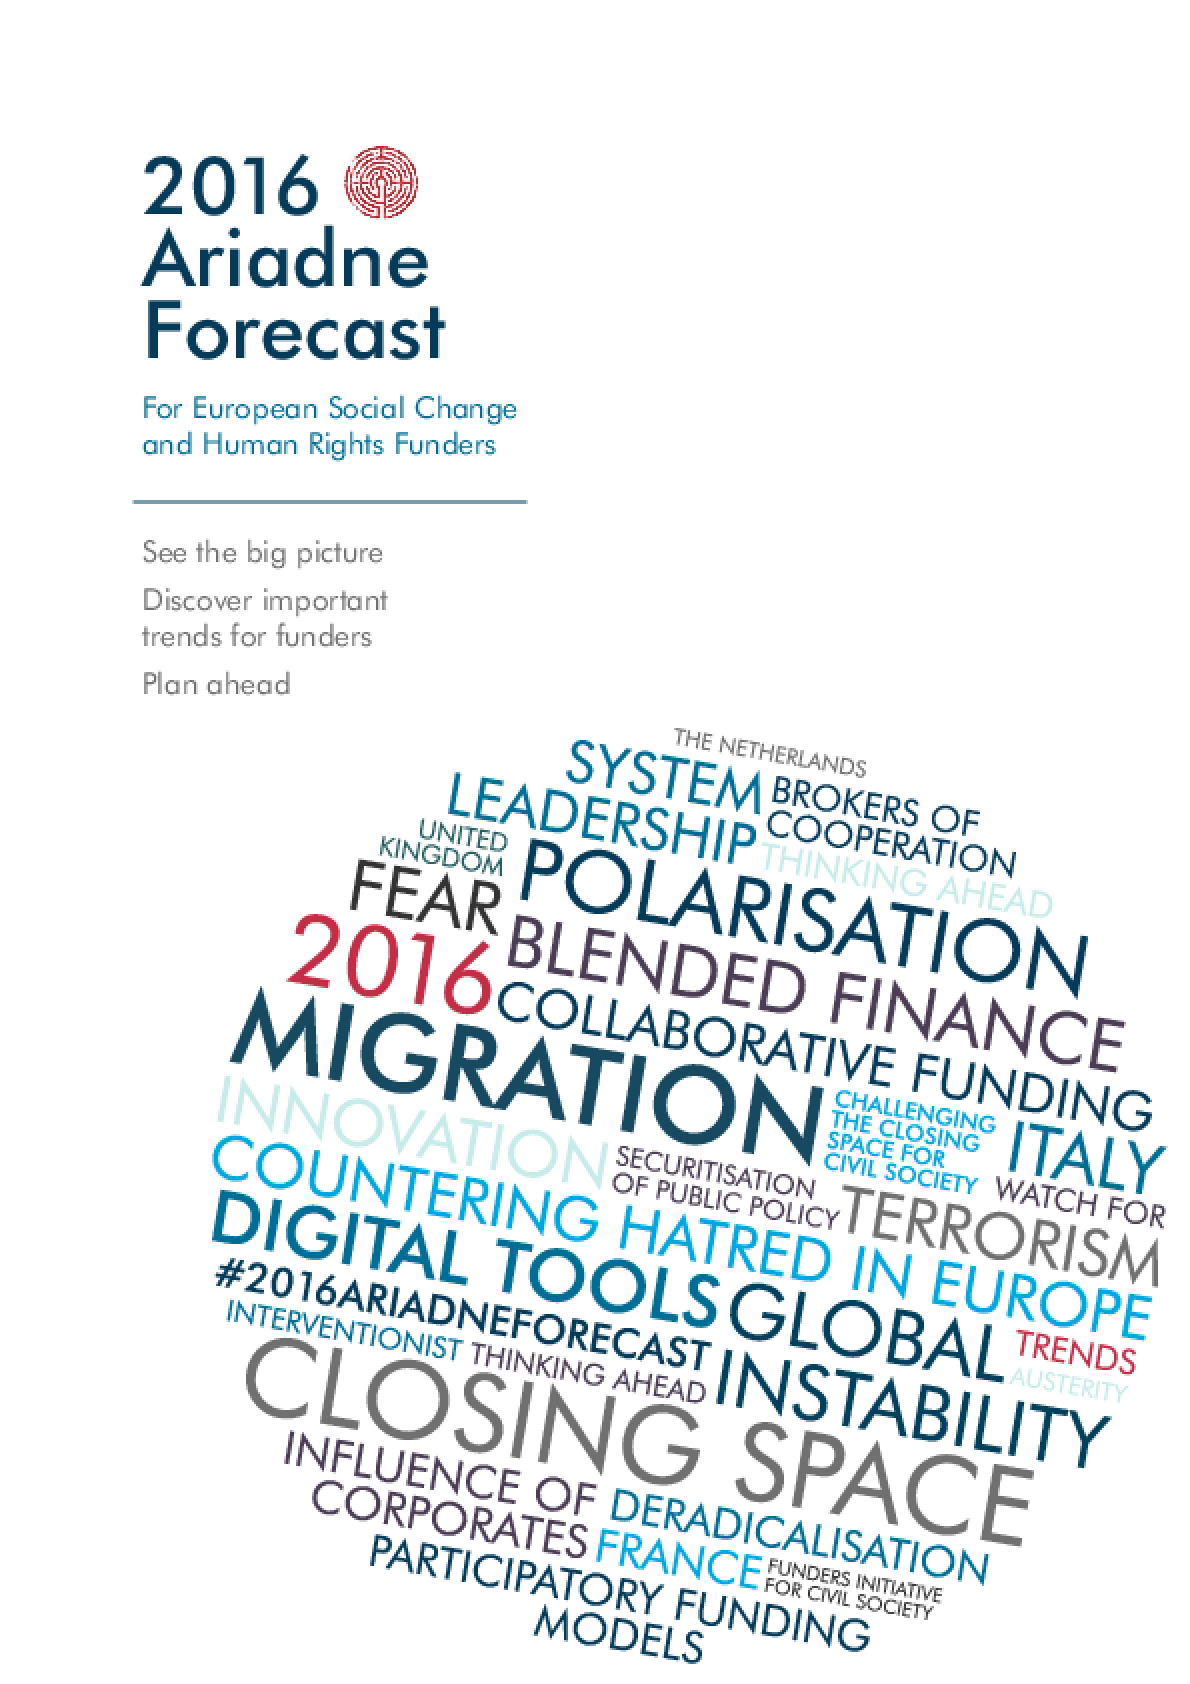 2016 Ariadne Forecast: For European Social Change and Human Rights Funders